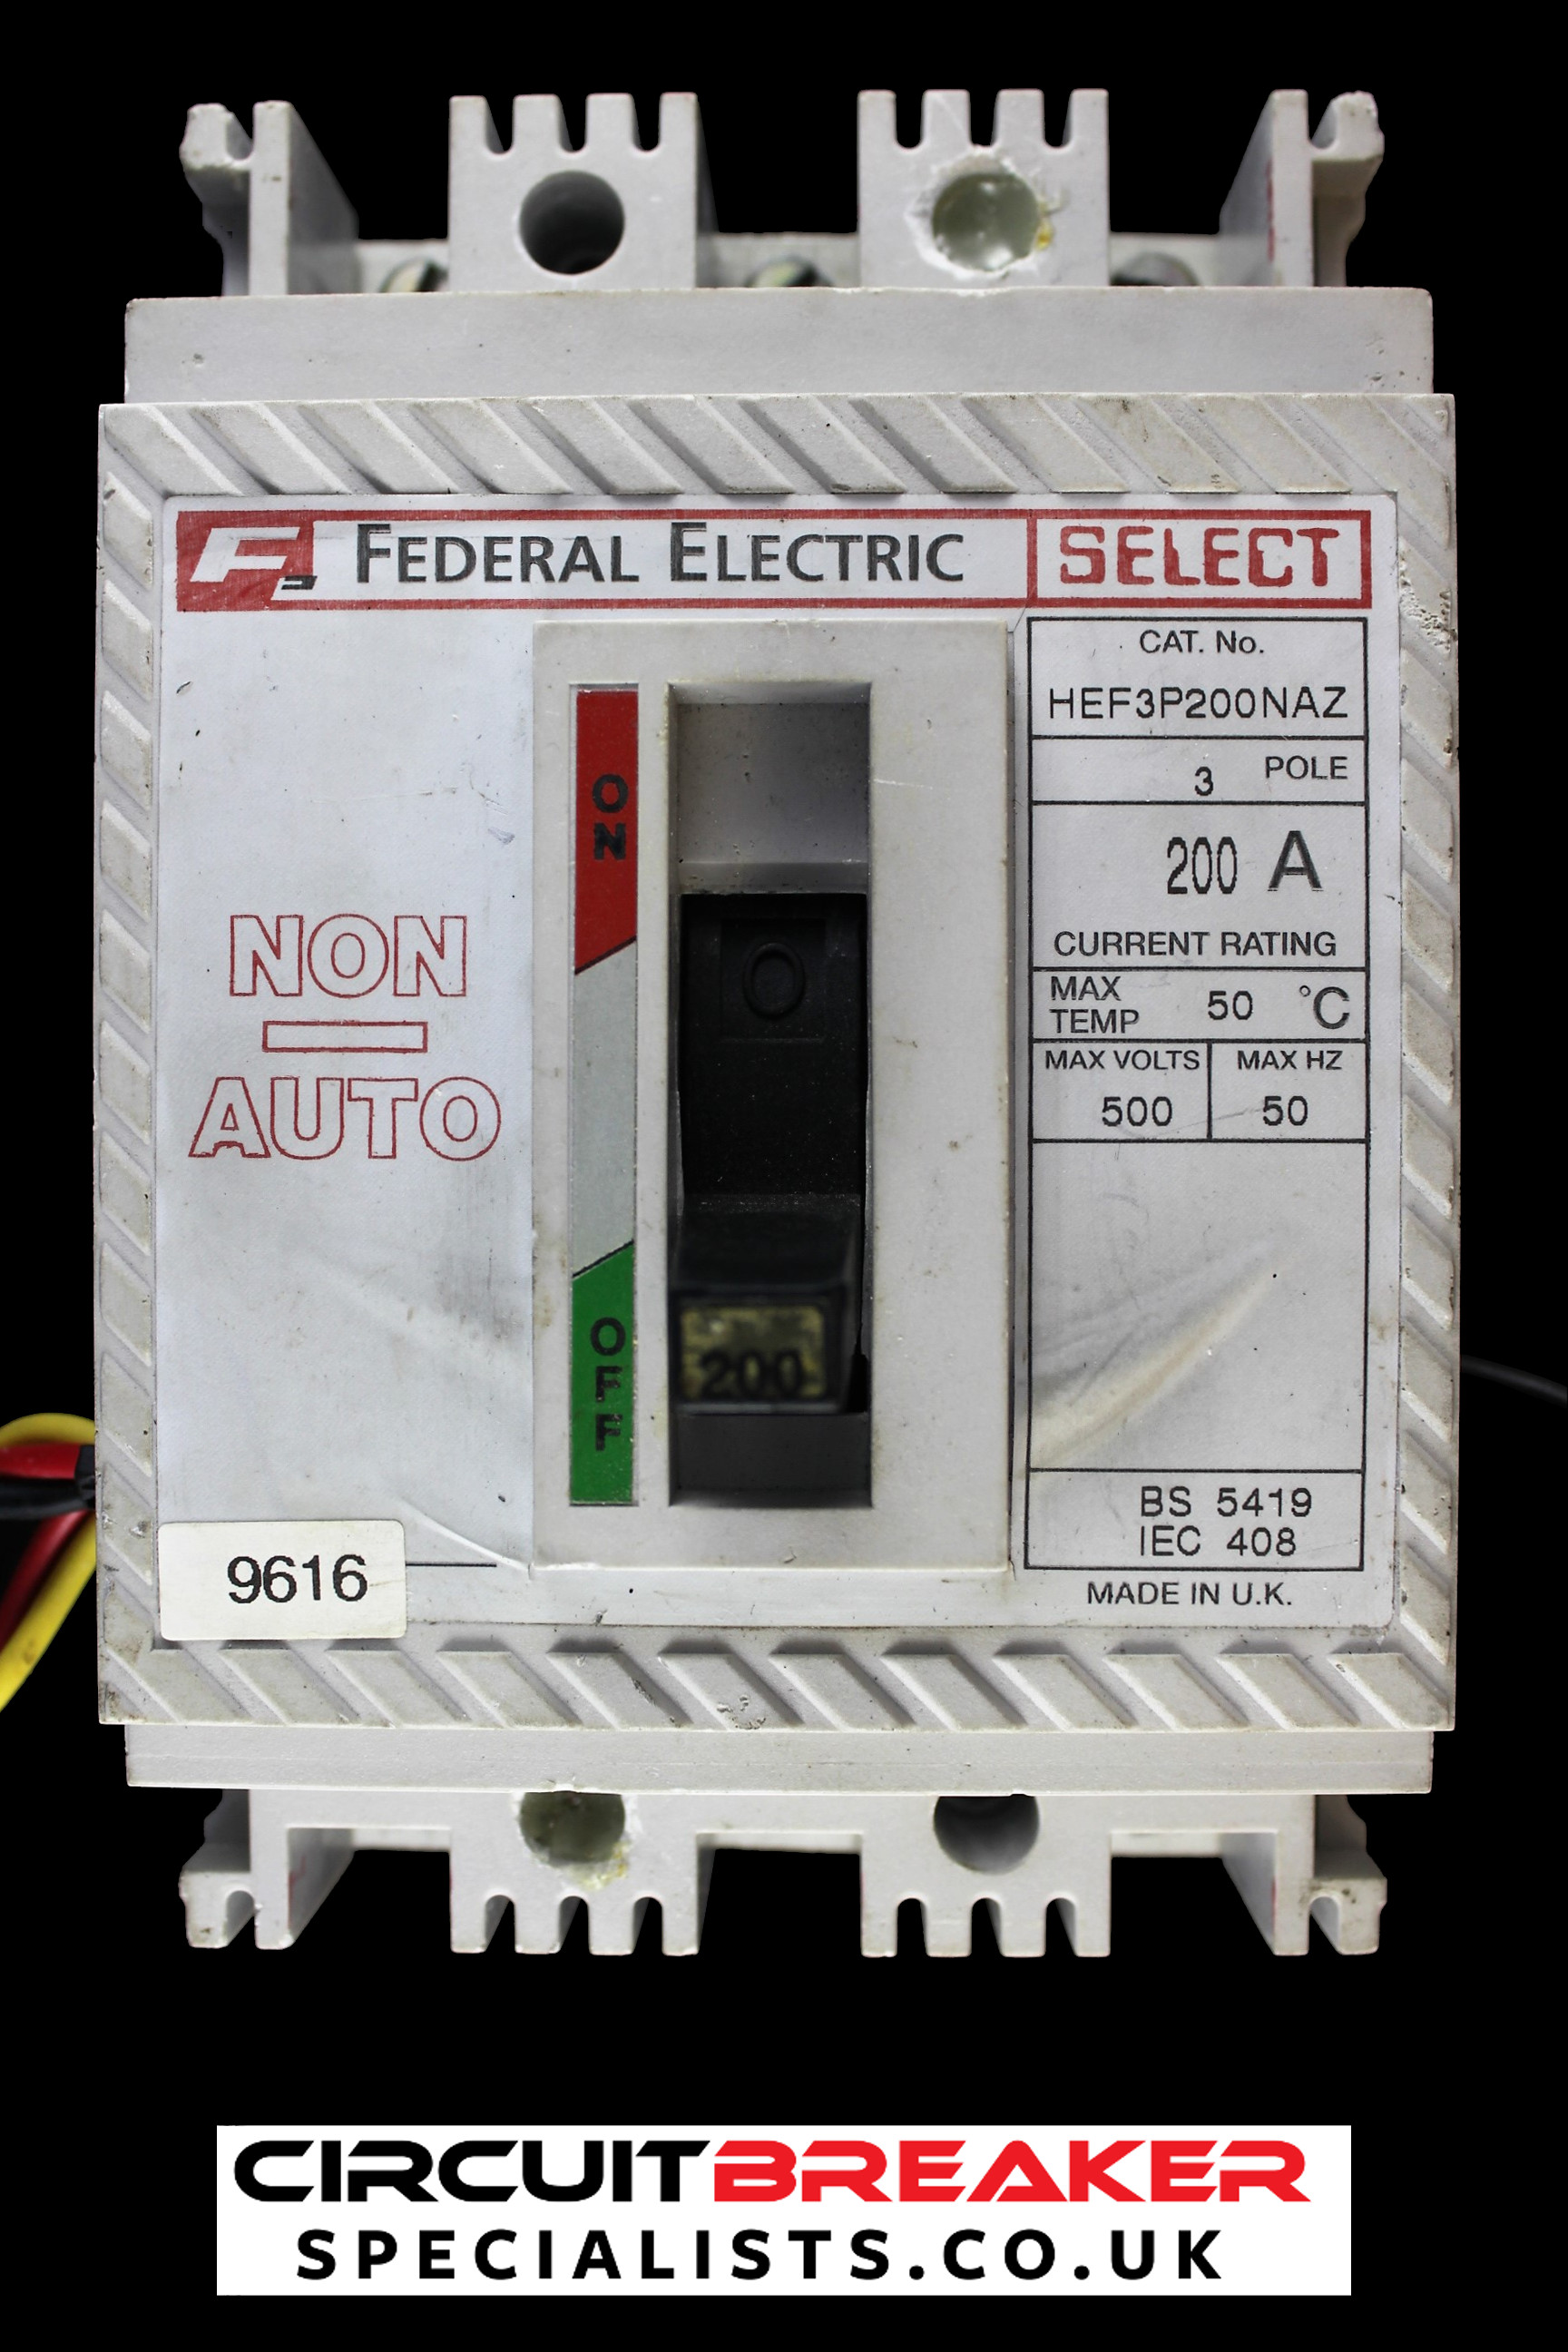 FEDERAL ELECTRIC 200 AMP TRIPLE POLE MCCB SHUNT TRIP HEF 3P200NAZ